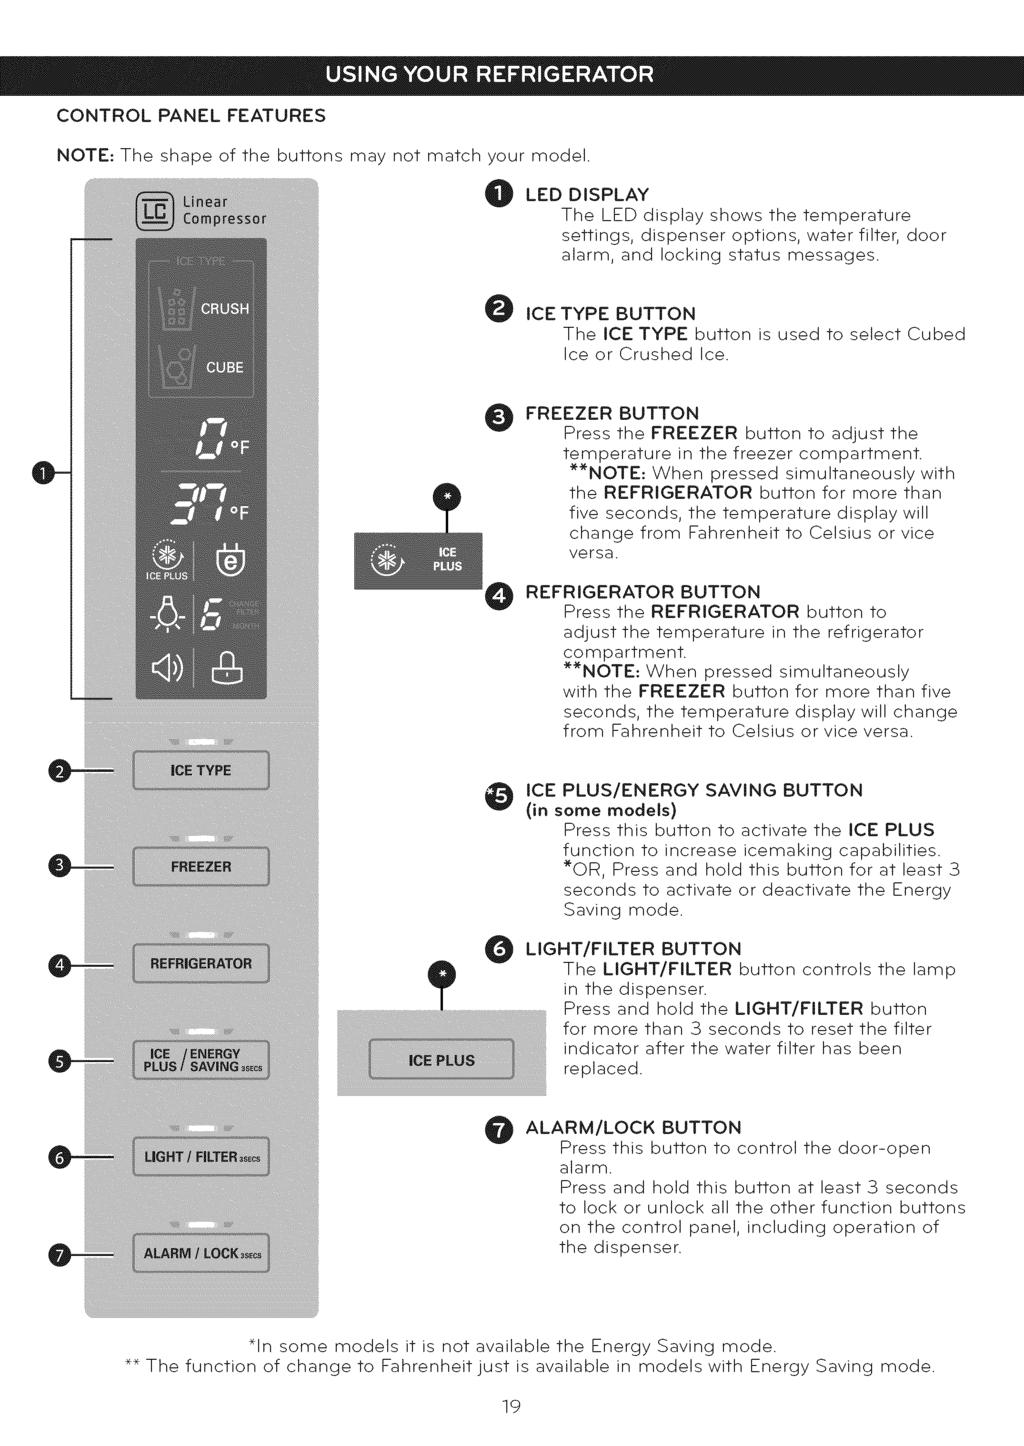 Bottom Free Refrigerator L Manual De Usuario Refrigerador Con Alarm Circuit For Doors Control Panel Features Note The Shape Of Buttons May Not Match Your Model